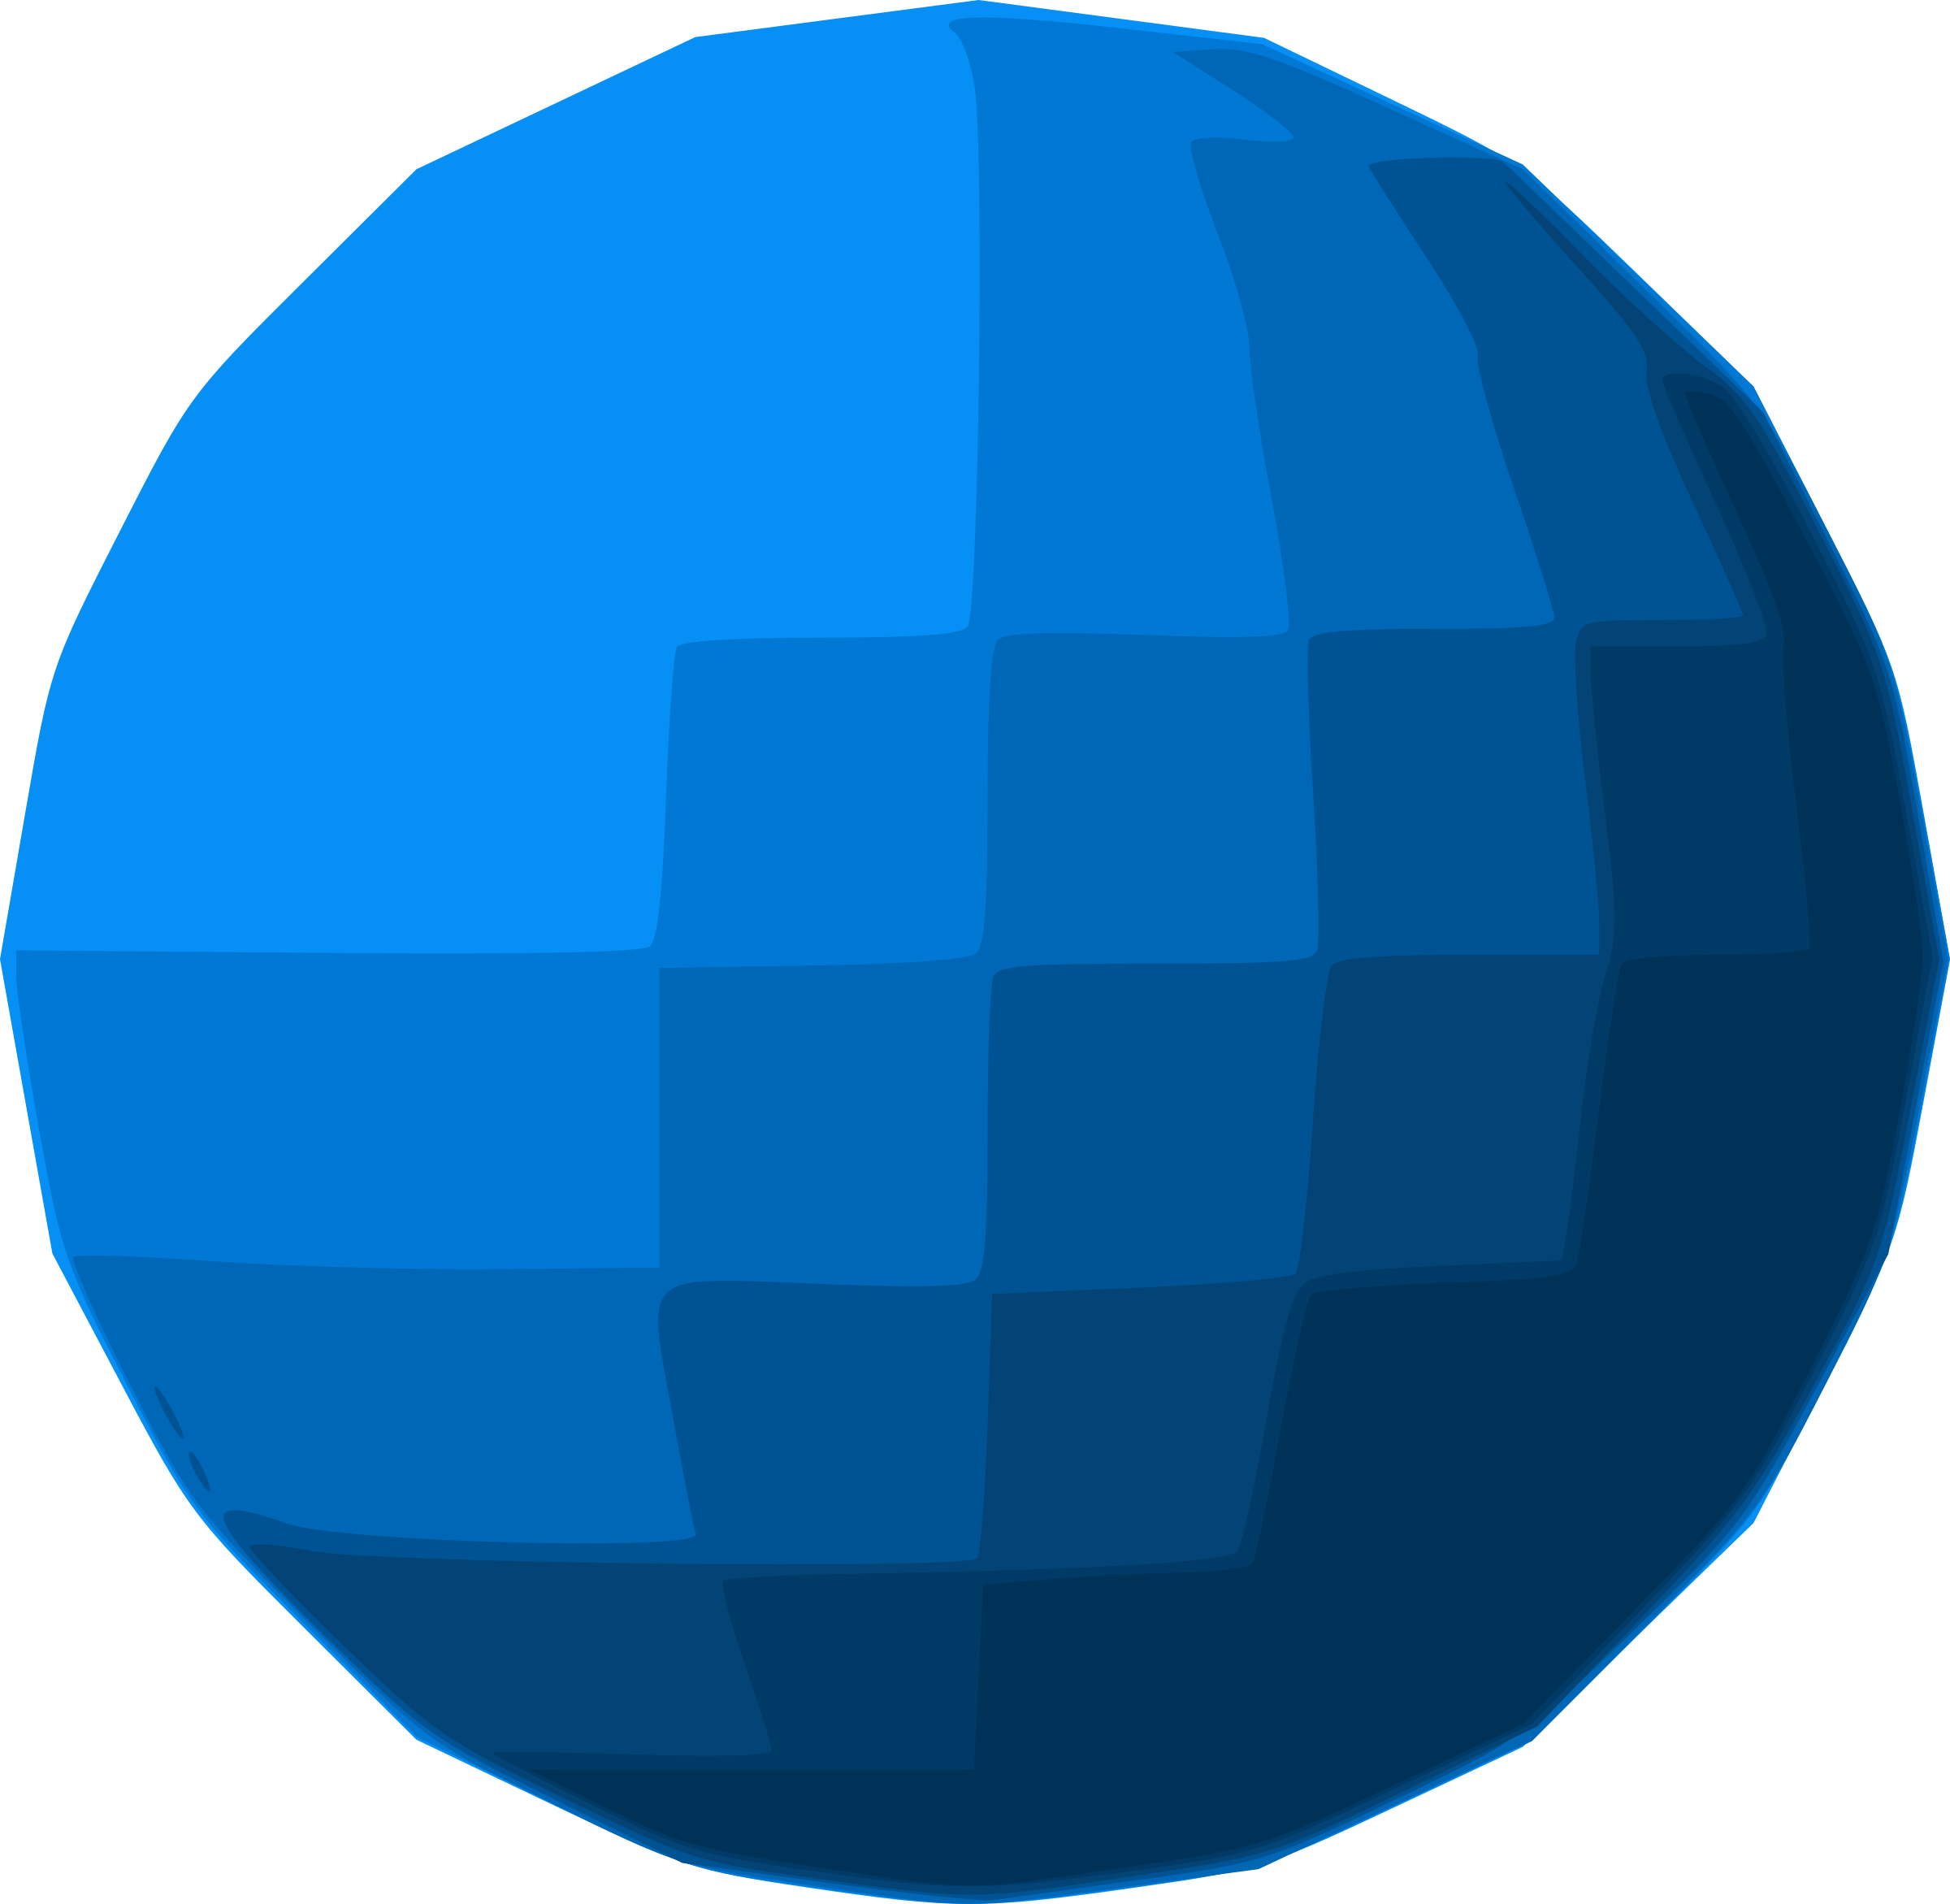 Sphere clipart svg. Blue disco ball icons